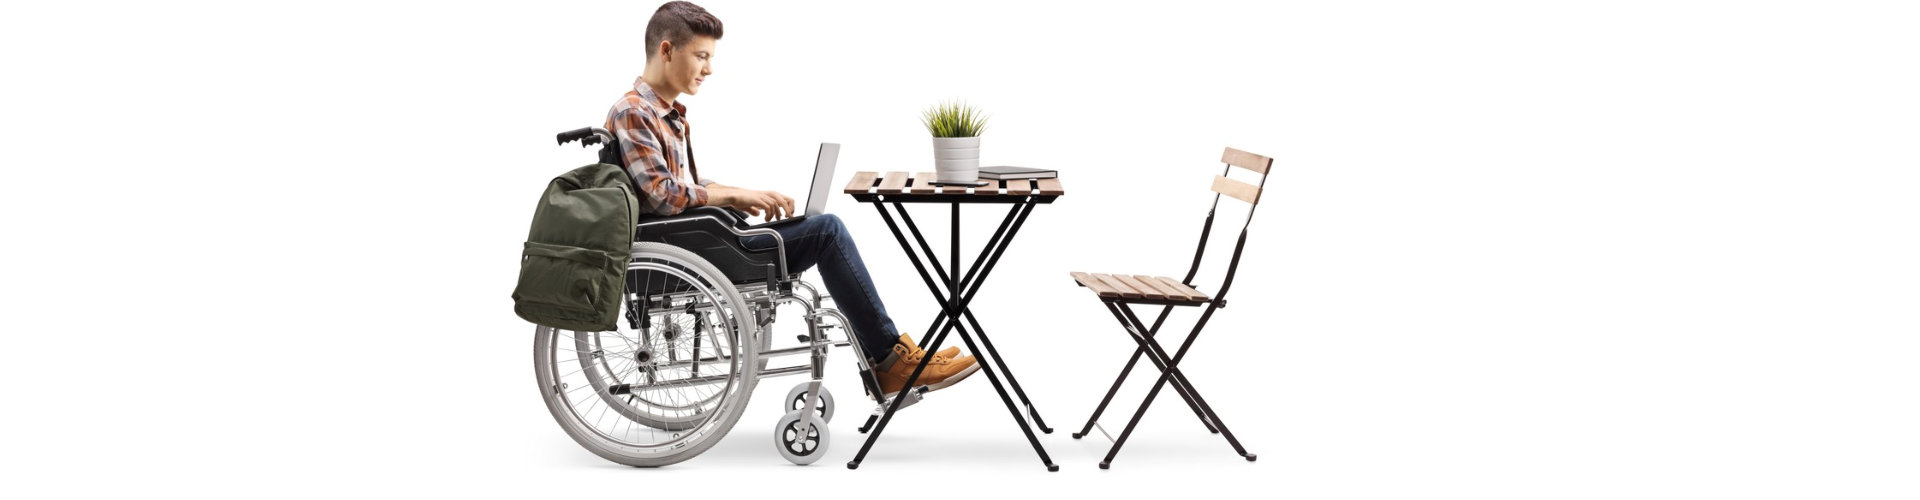 young man with wheelchair working using laptop